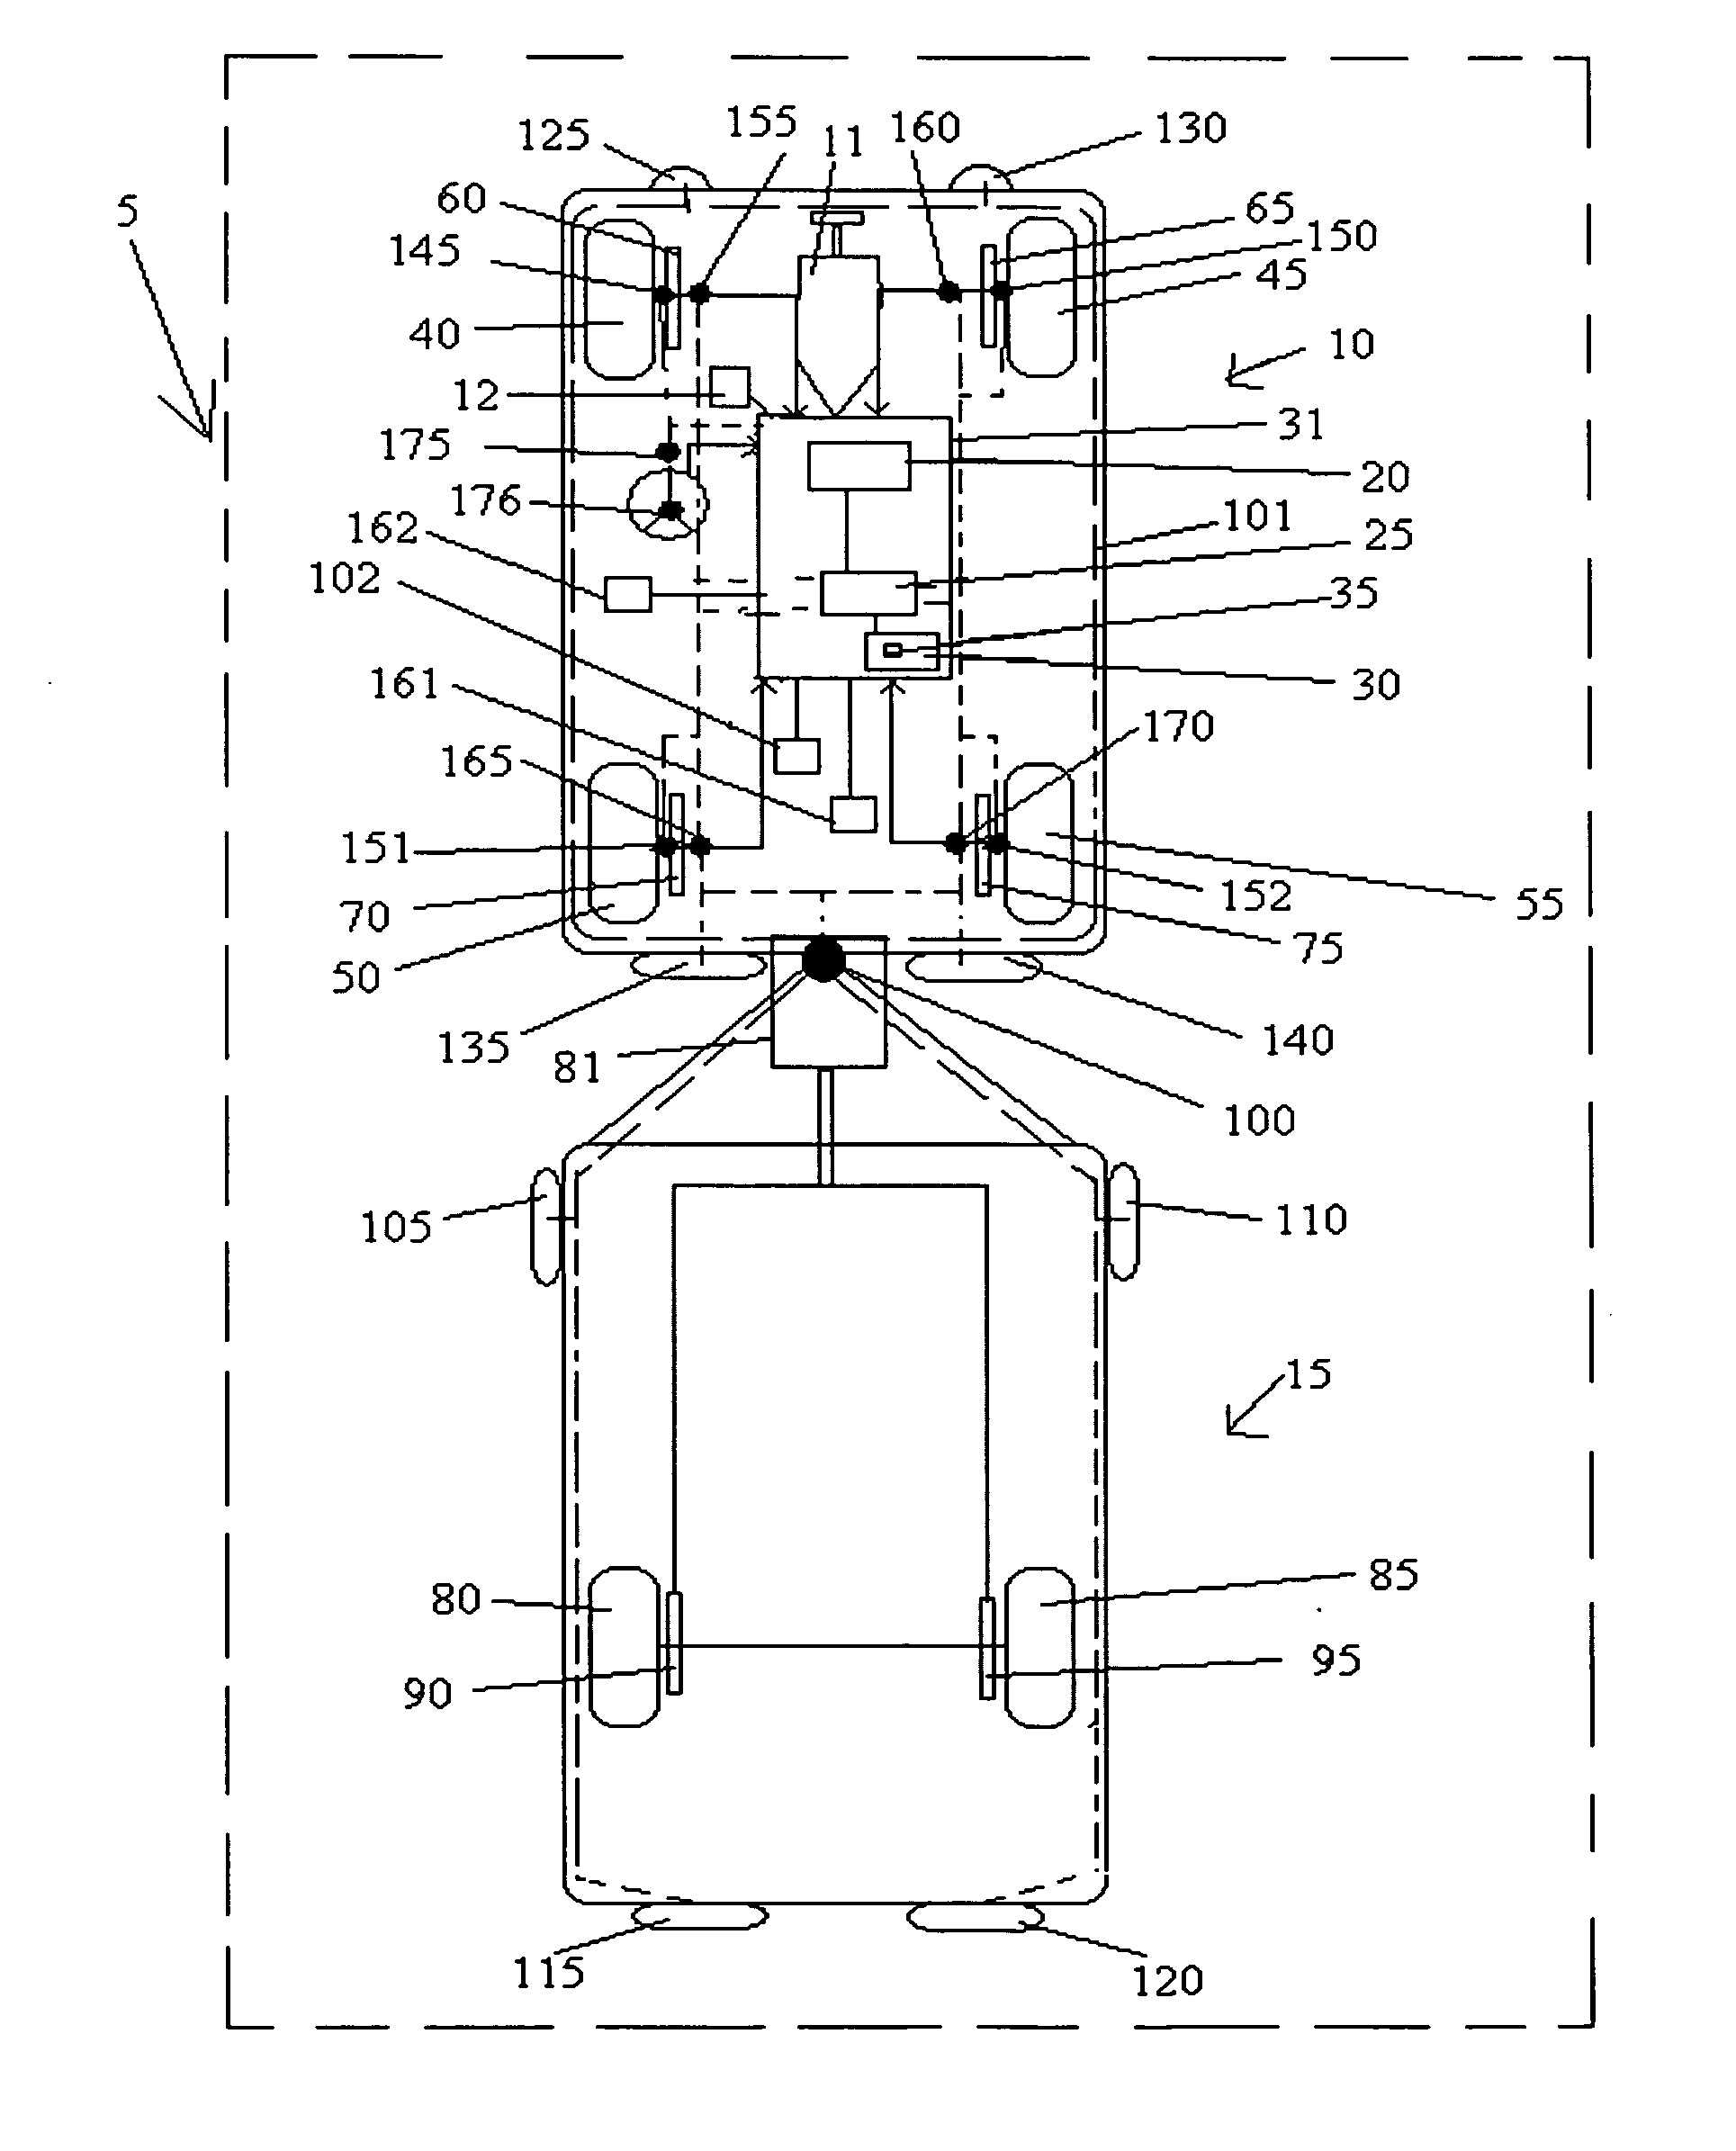 Patente Us20070260386 Stability Enhancing System For Tow Vehicle Shorelander Wiring Harness Patent Drawing